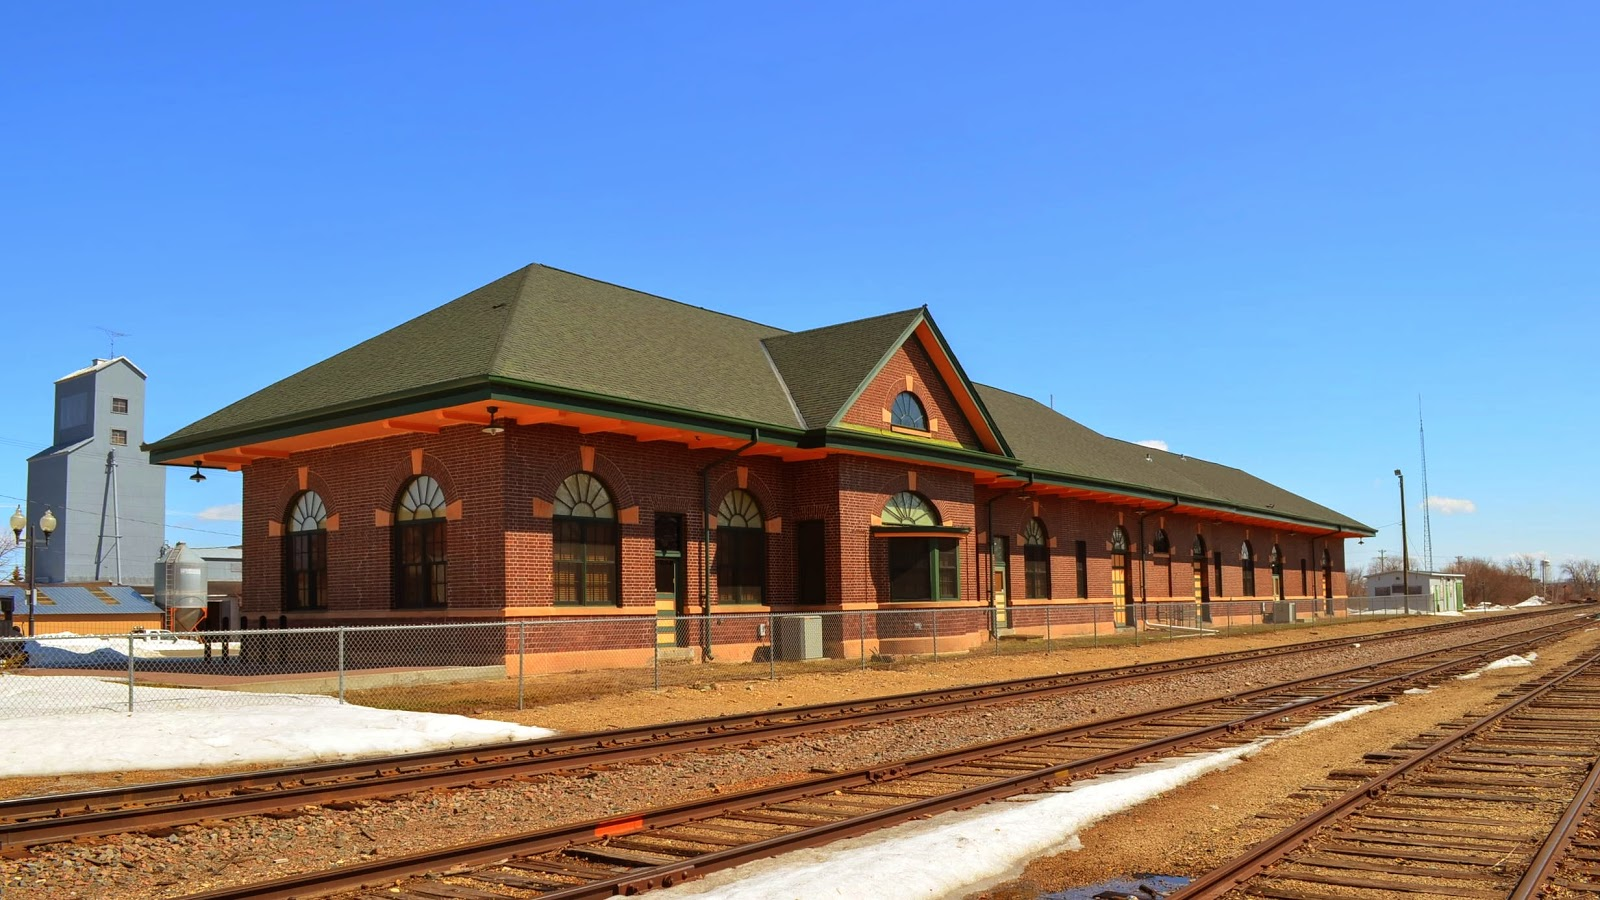 The Great Northern Depot, now the Beltrami County Historical Society.